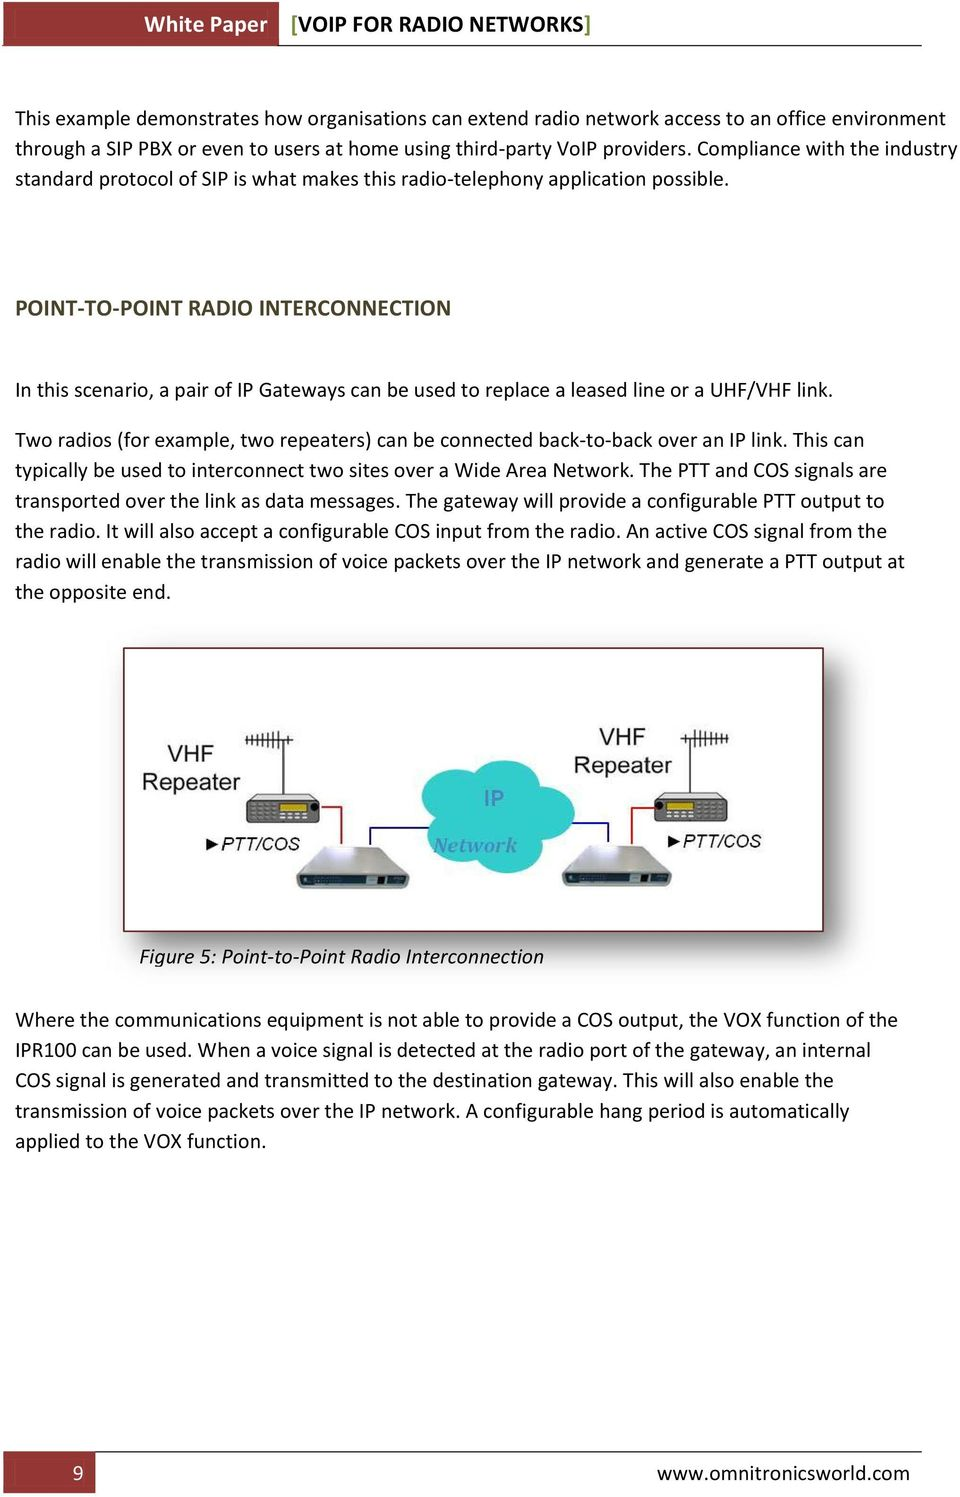 POINT-TO-POINT RADIO INTERCONNECTION In this scenario, a pair of IP Gateways can be used to replace a leased line or a UHF/VHF link.